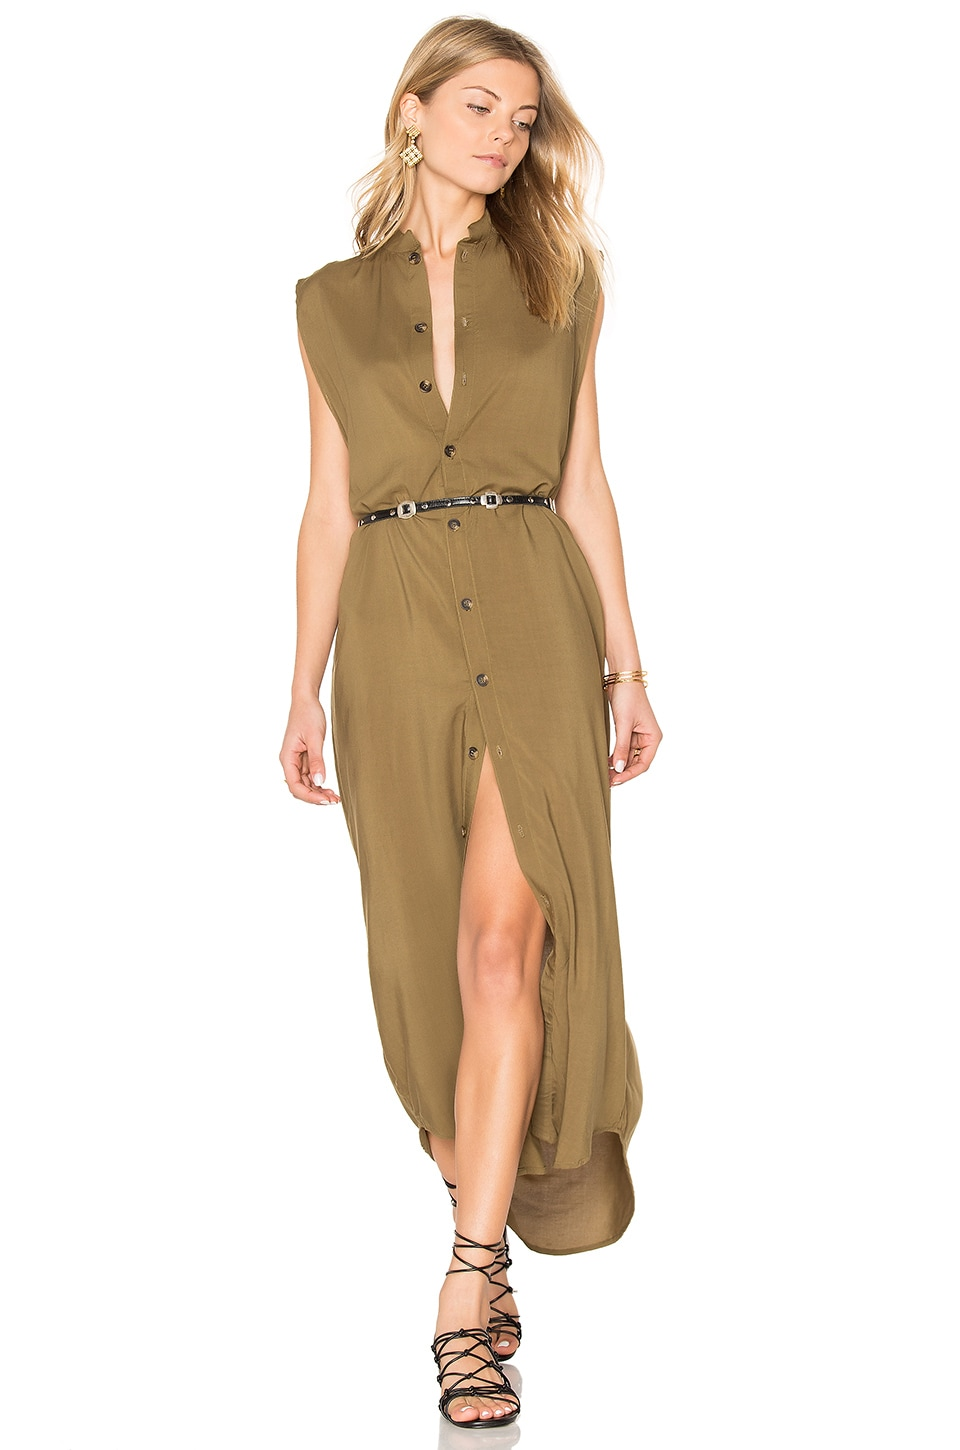 BOYS + ARROWS Im Not A Dress Dress Maxi in Army